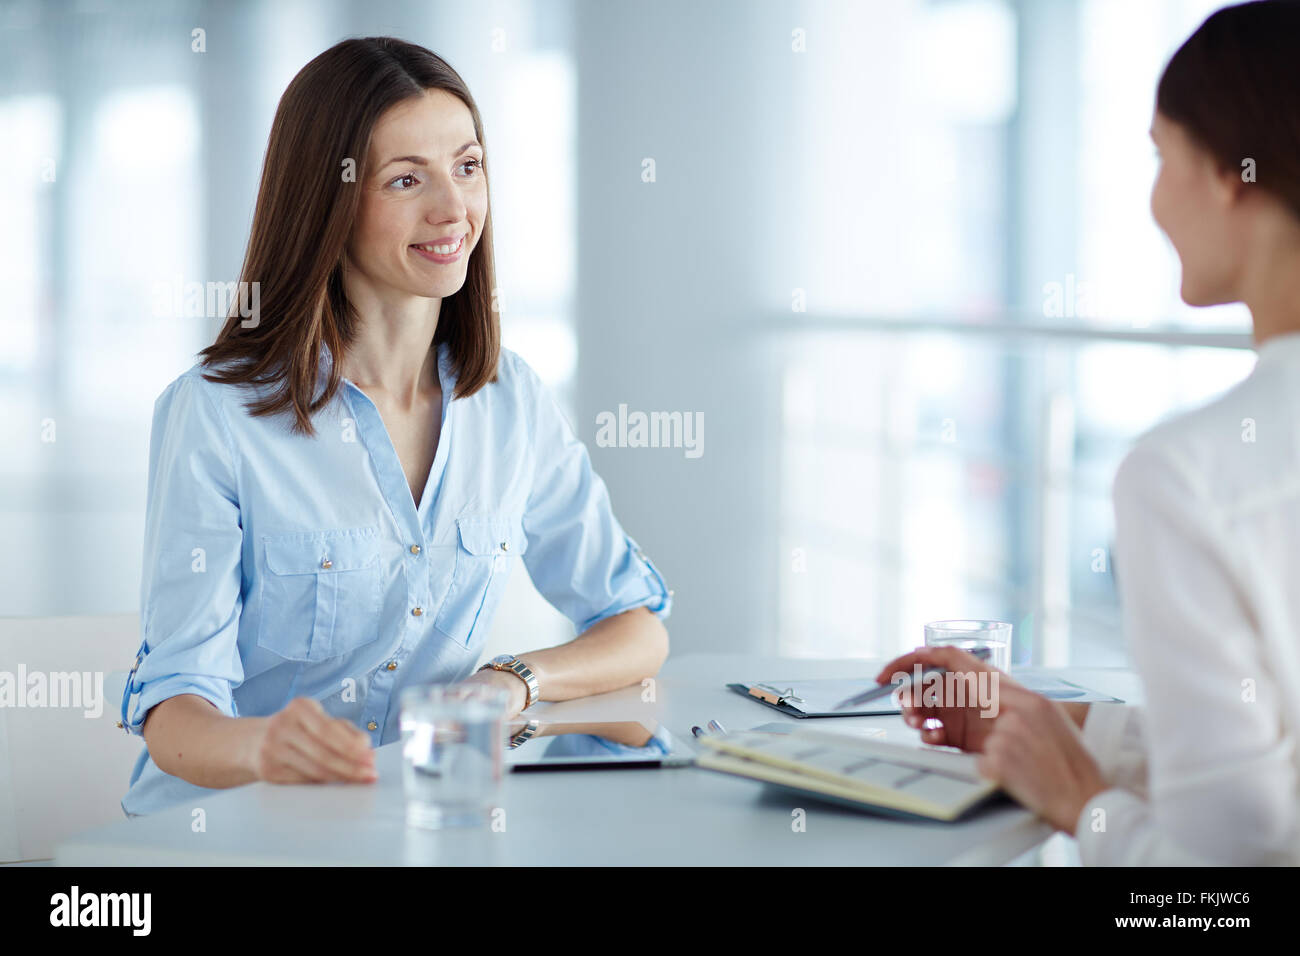 Smiling young woman having a business interview - Stock Image